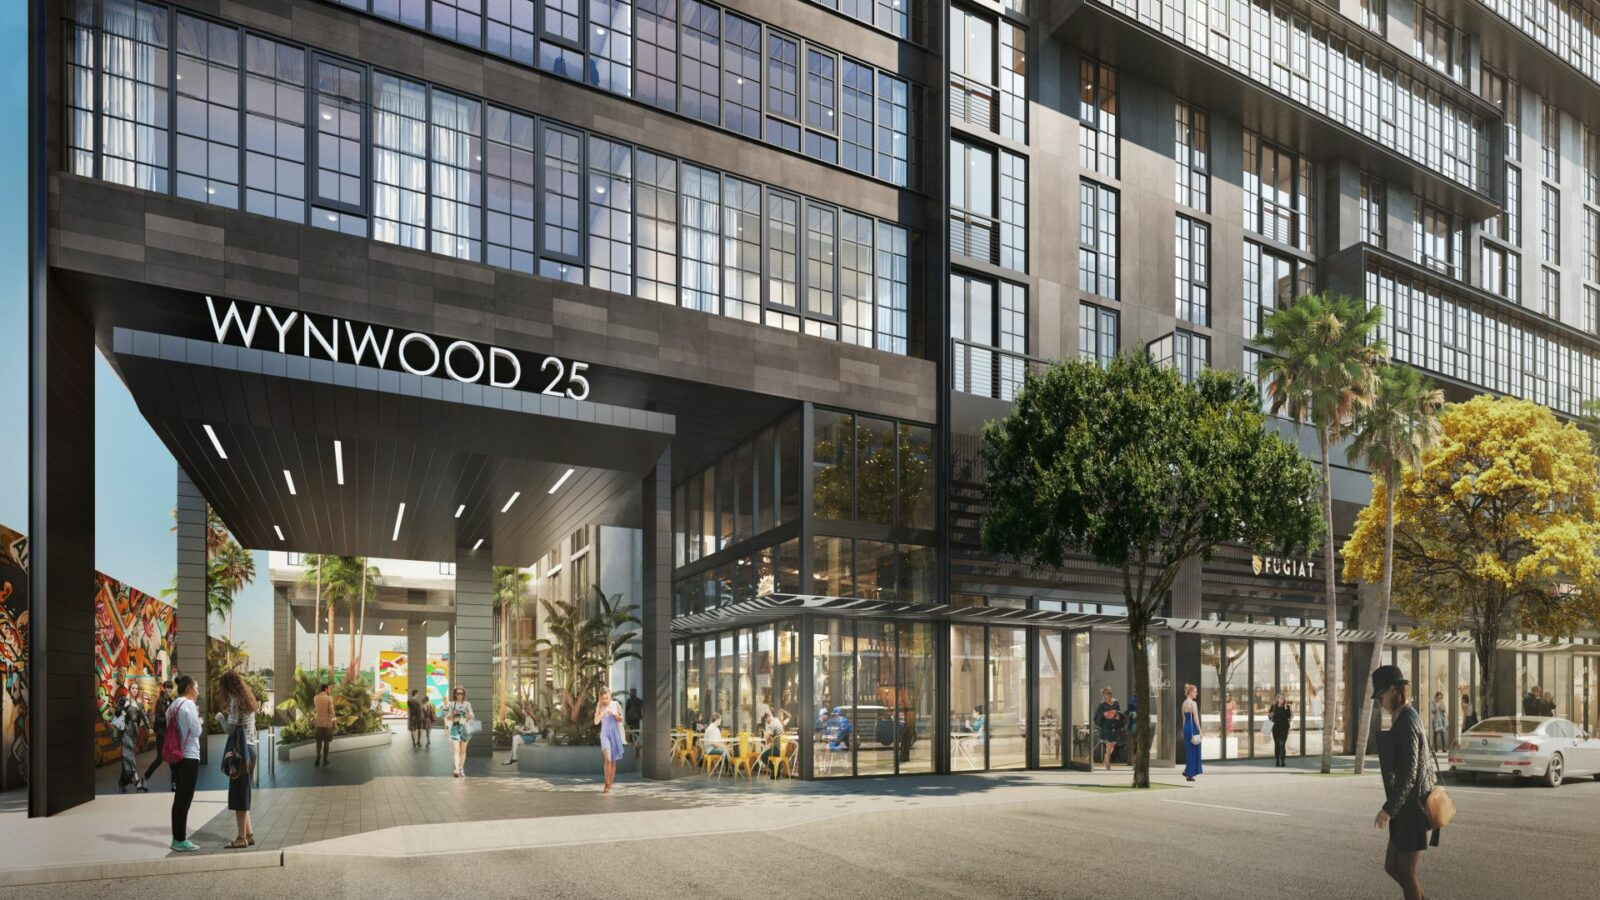 Wynwood 25 apartments